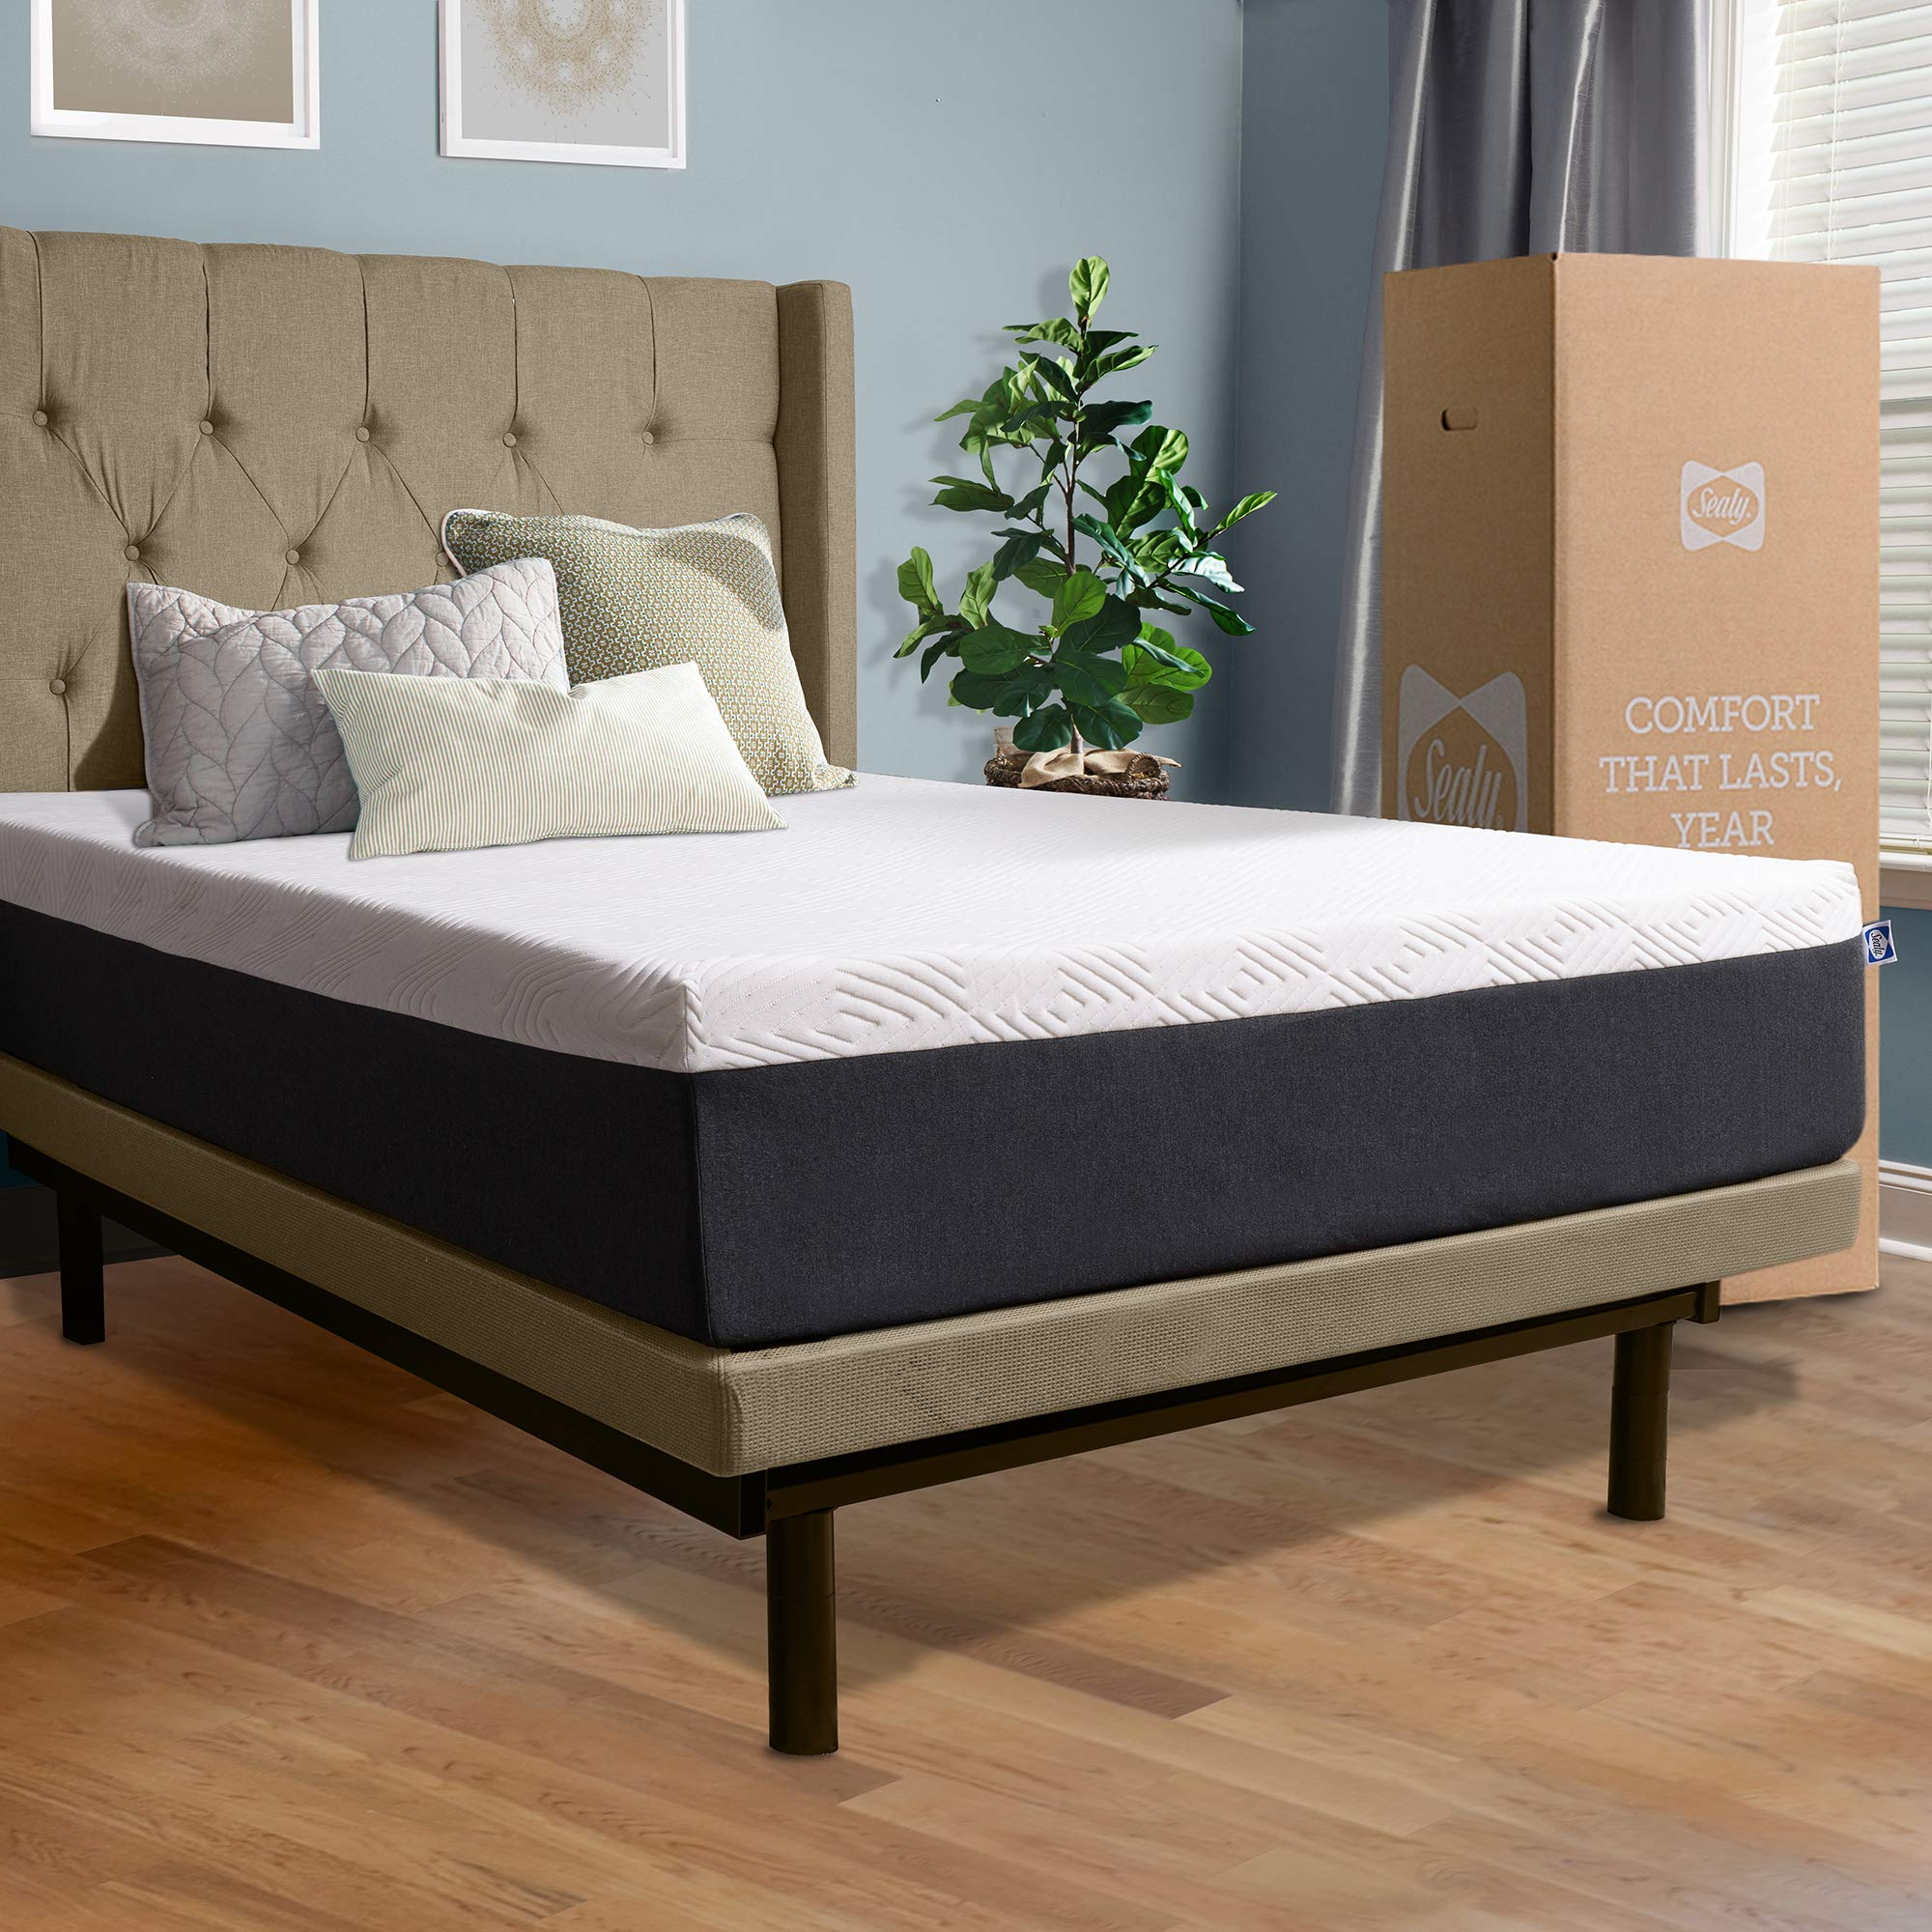 Sealy, 12-Inch, Hybrid Bed in a Box, Adaptive Comfort Layers, Medium Feel, Memory Foam Mattress, King, White by Sealy